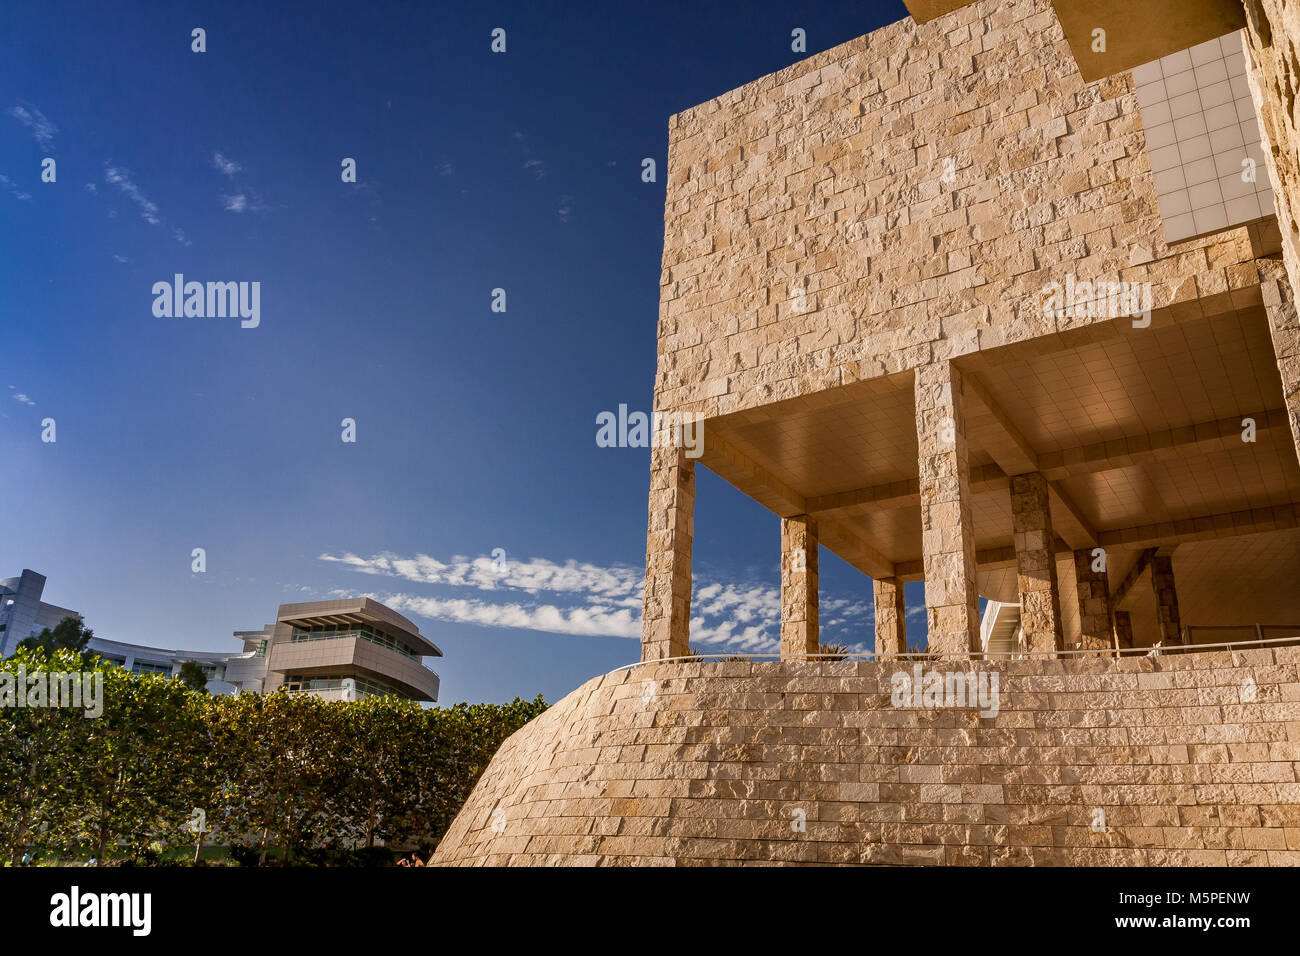 Museums exhibition Pavillion at The Getty Center ,Brentwood  Los Angeles California - Stock Image